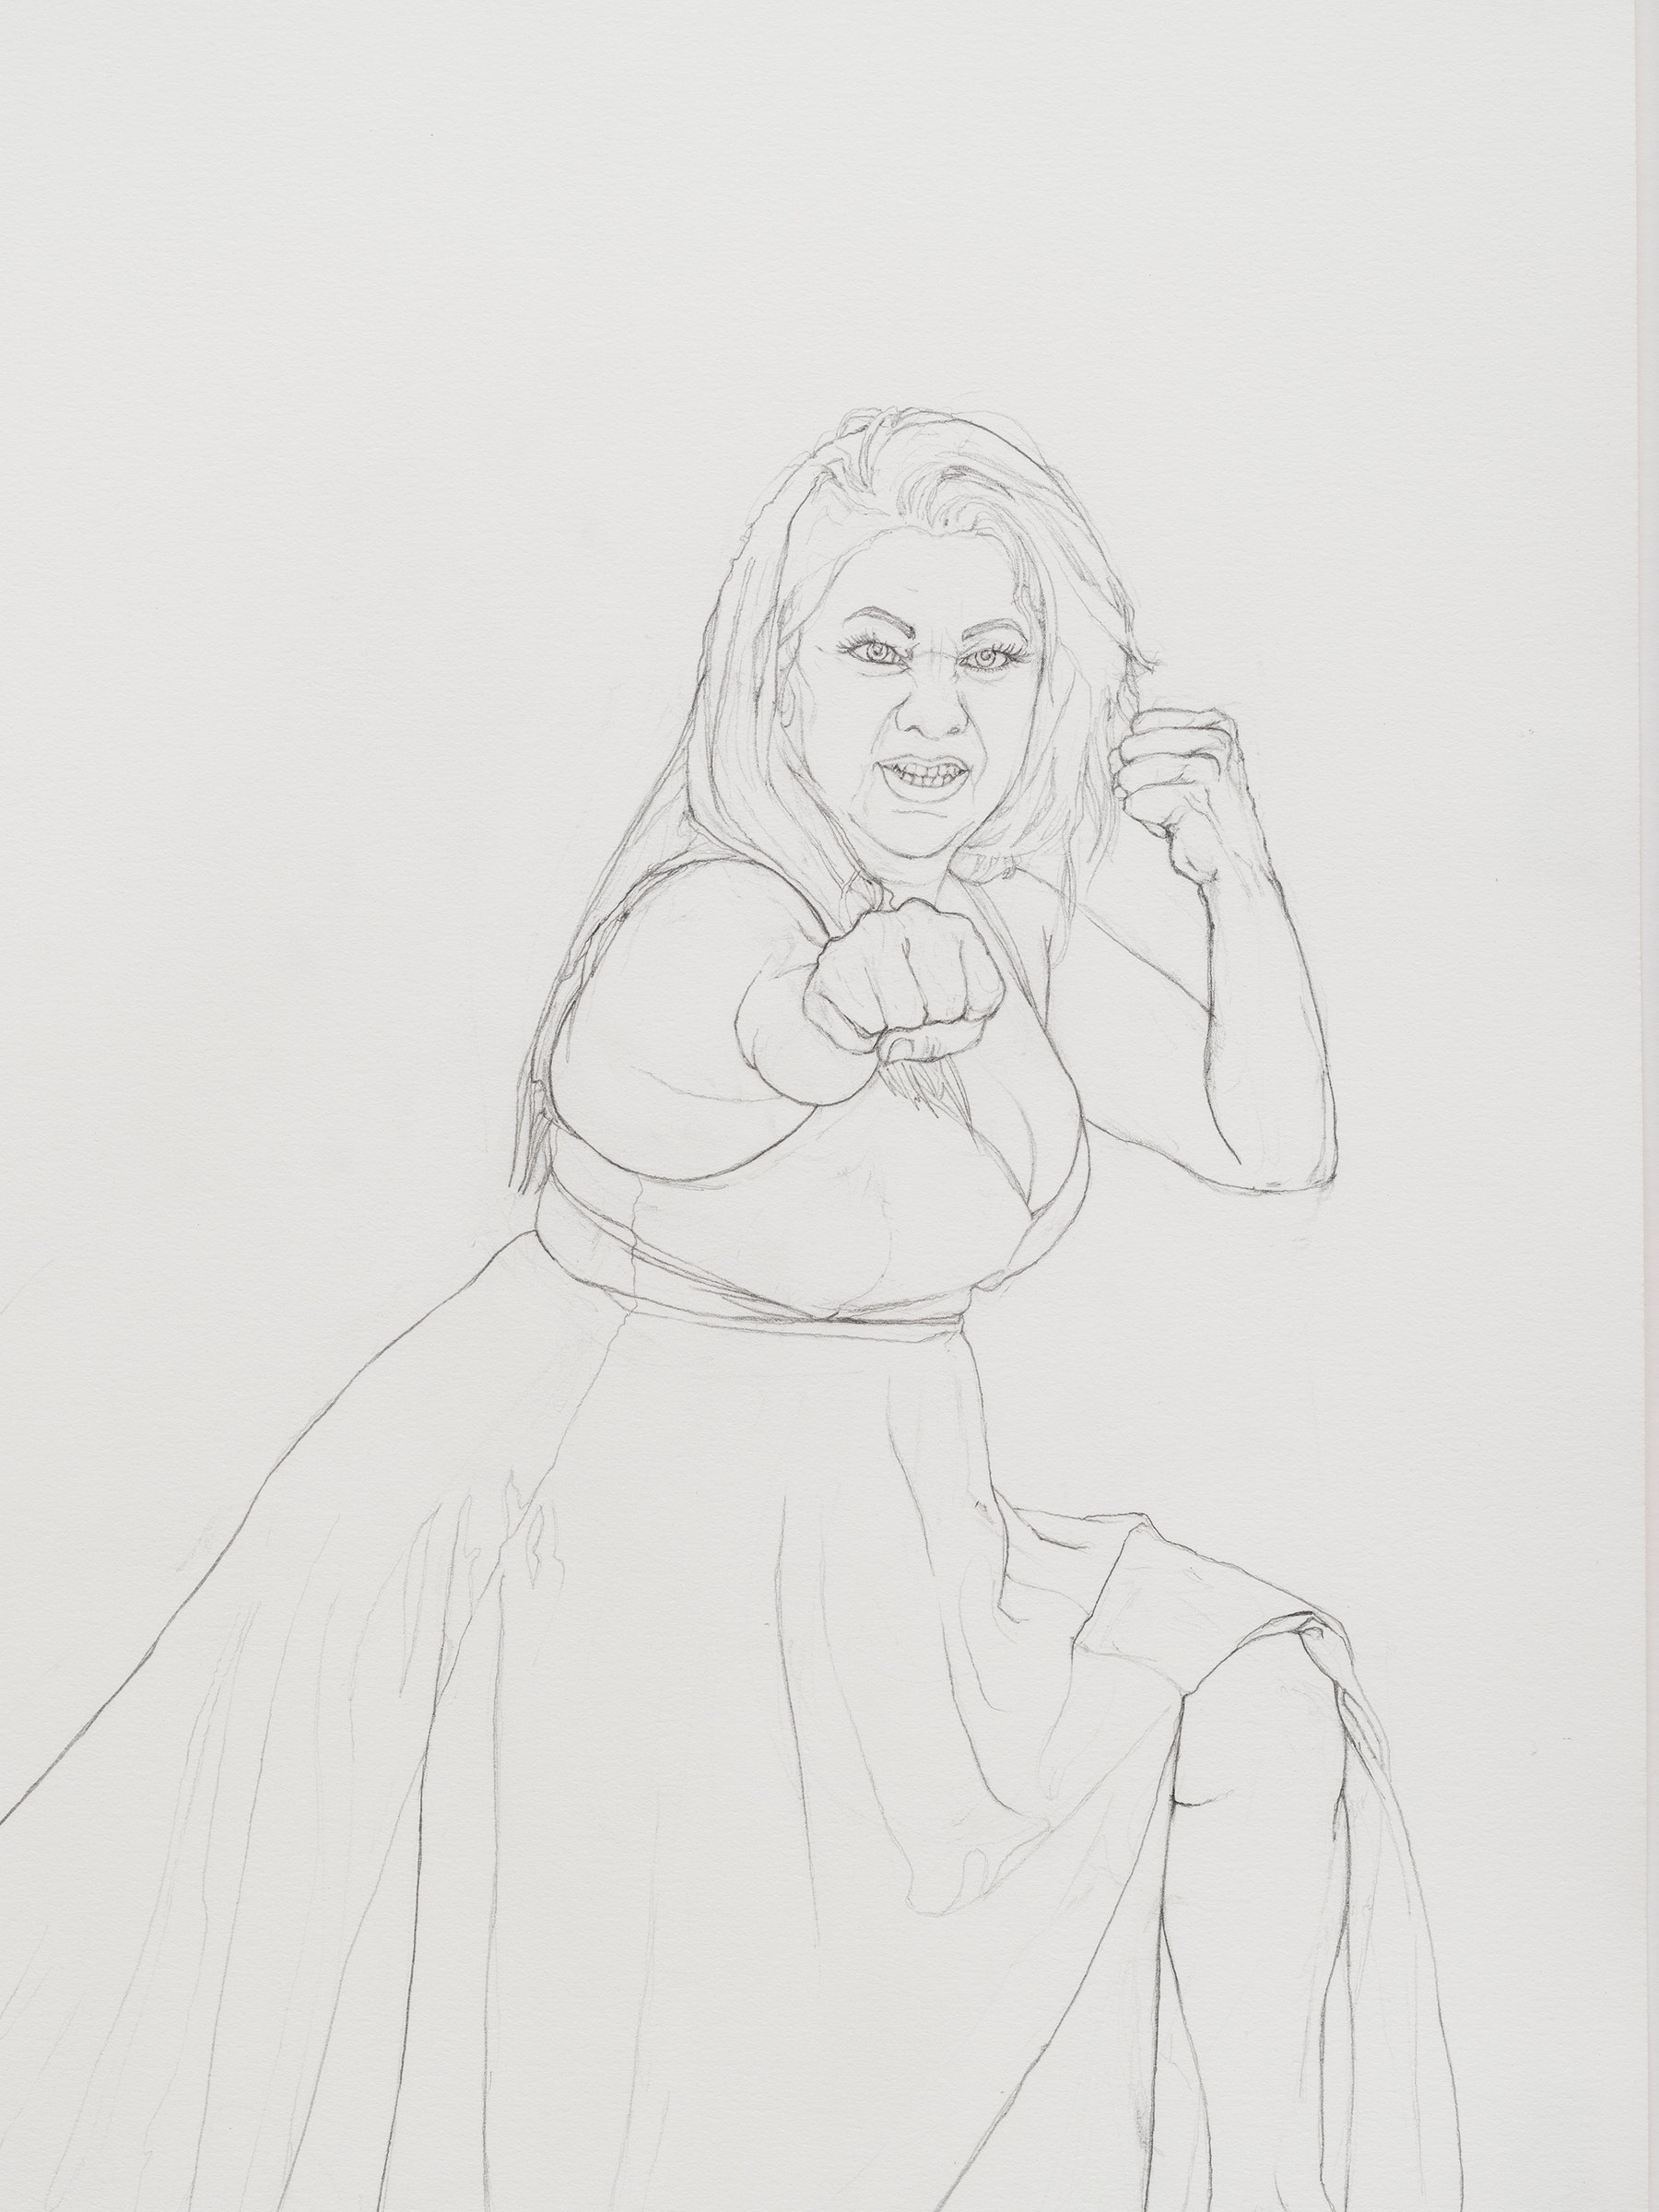 """Andrea Bowers """"Self-Defense Drawings - Study of Maritza,"""" 2021 Graphite on paper 22 ³⁄₈"""" x 15"""" [HxW] (56.81 x 38.1 cm) paper size; 25 ¹⁄₄"""" x 17 ³⁄₄"""" x 2"""" [HxWxD] (64.13 x 45.08 x 5.08 cm) framed Inventory #BOW595 Courtesy of the artist and Vielmetter Los Angeles Photo credit: Jeff McLane"""